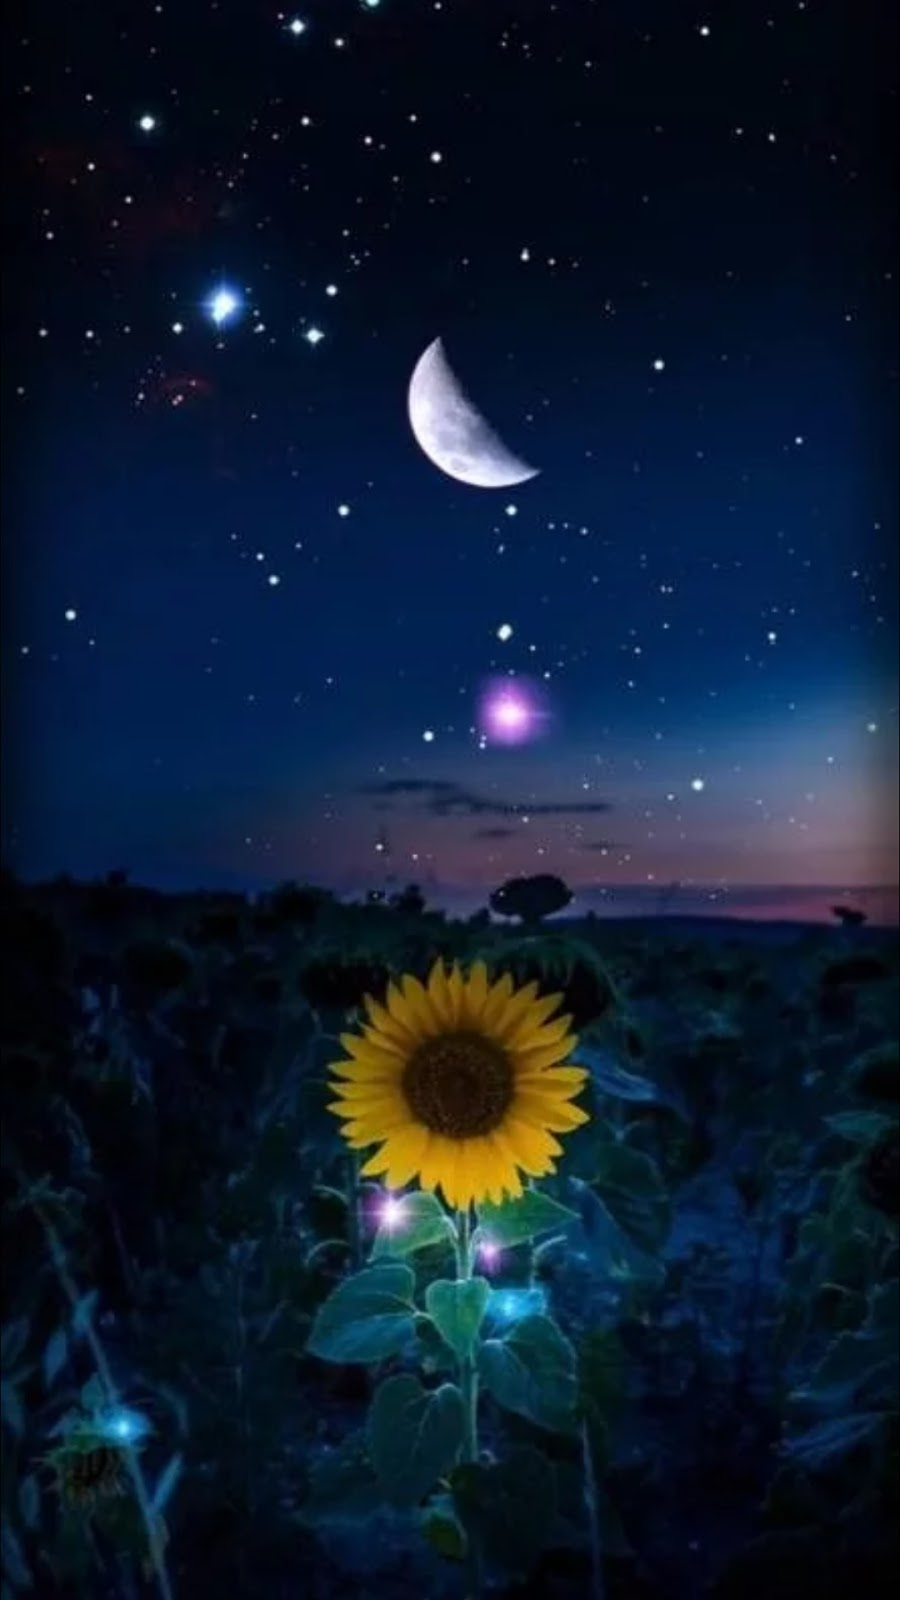 Image result for sunflower under the moon